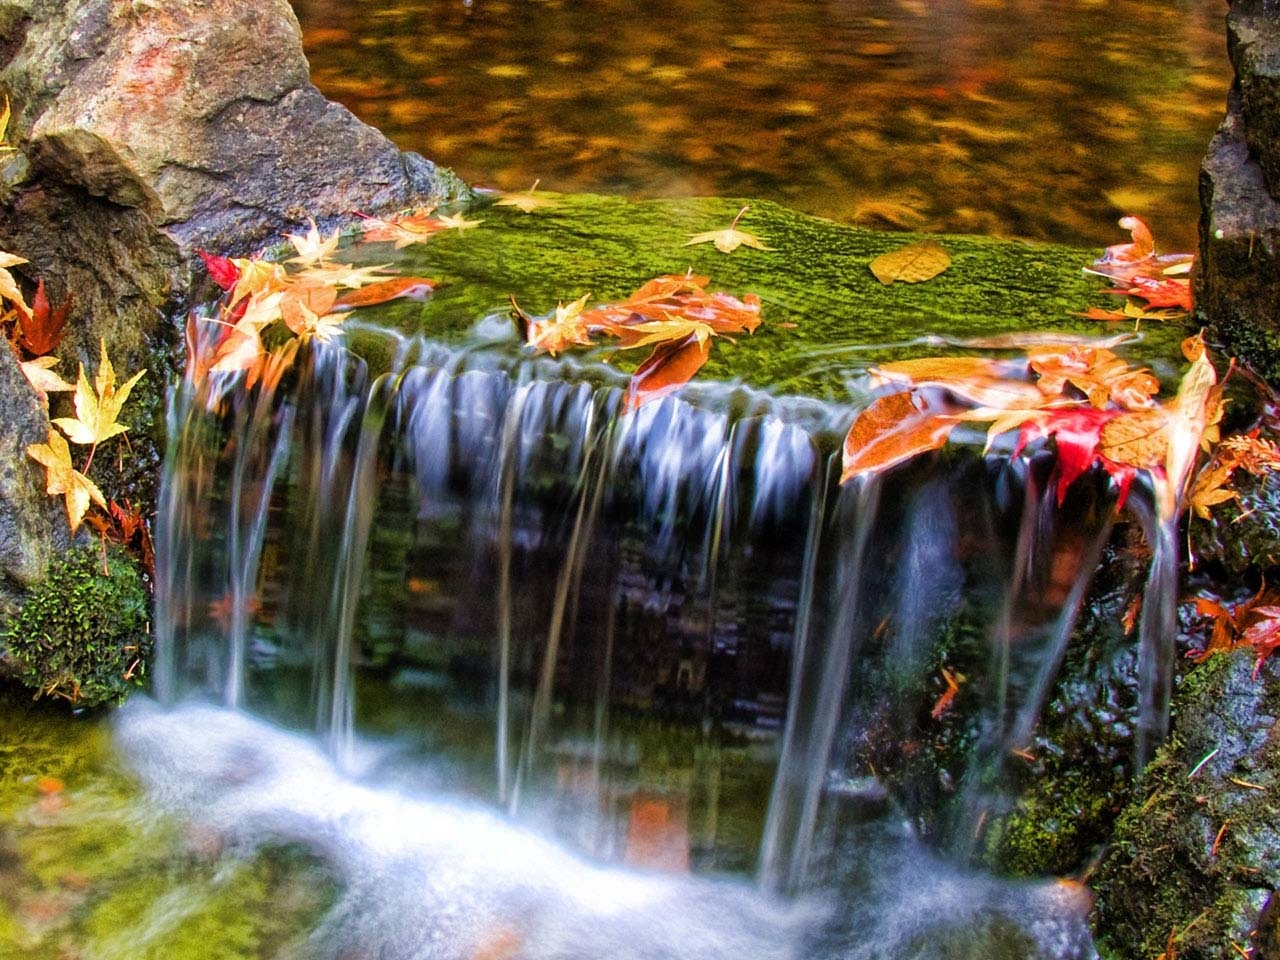 32918 download wallpaper Landscape, Rivers, Autumn screensavers and pictures for free